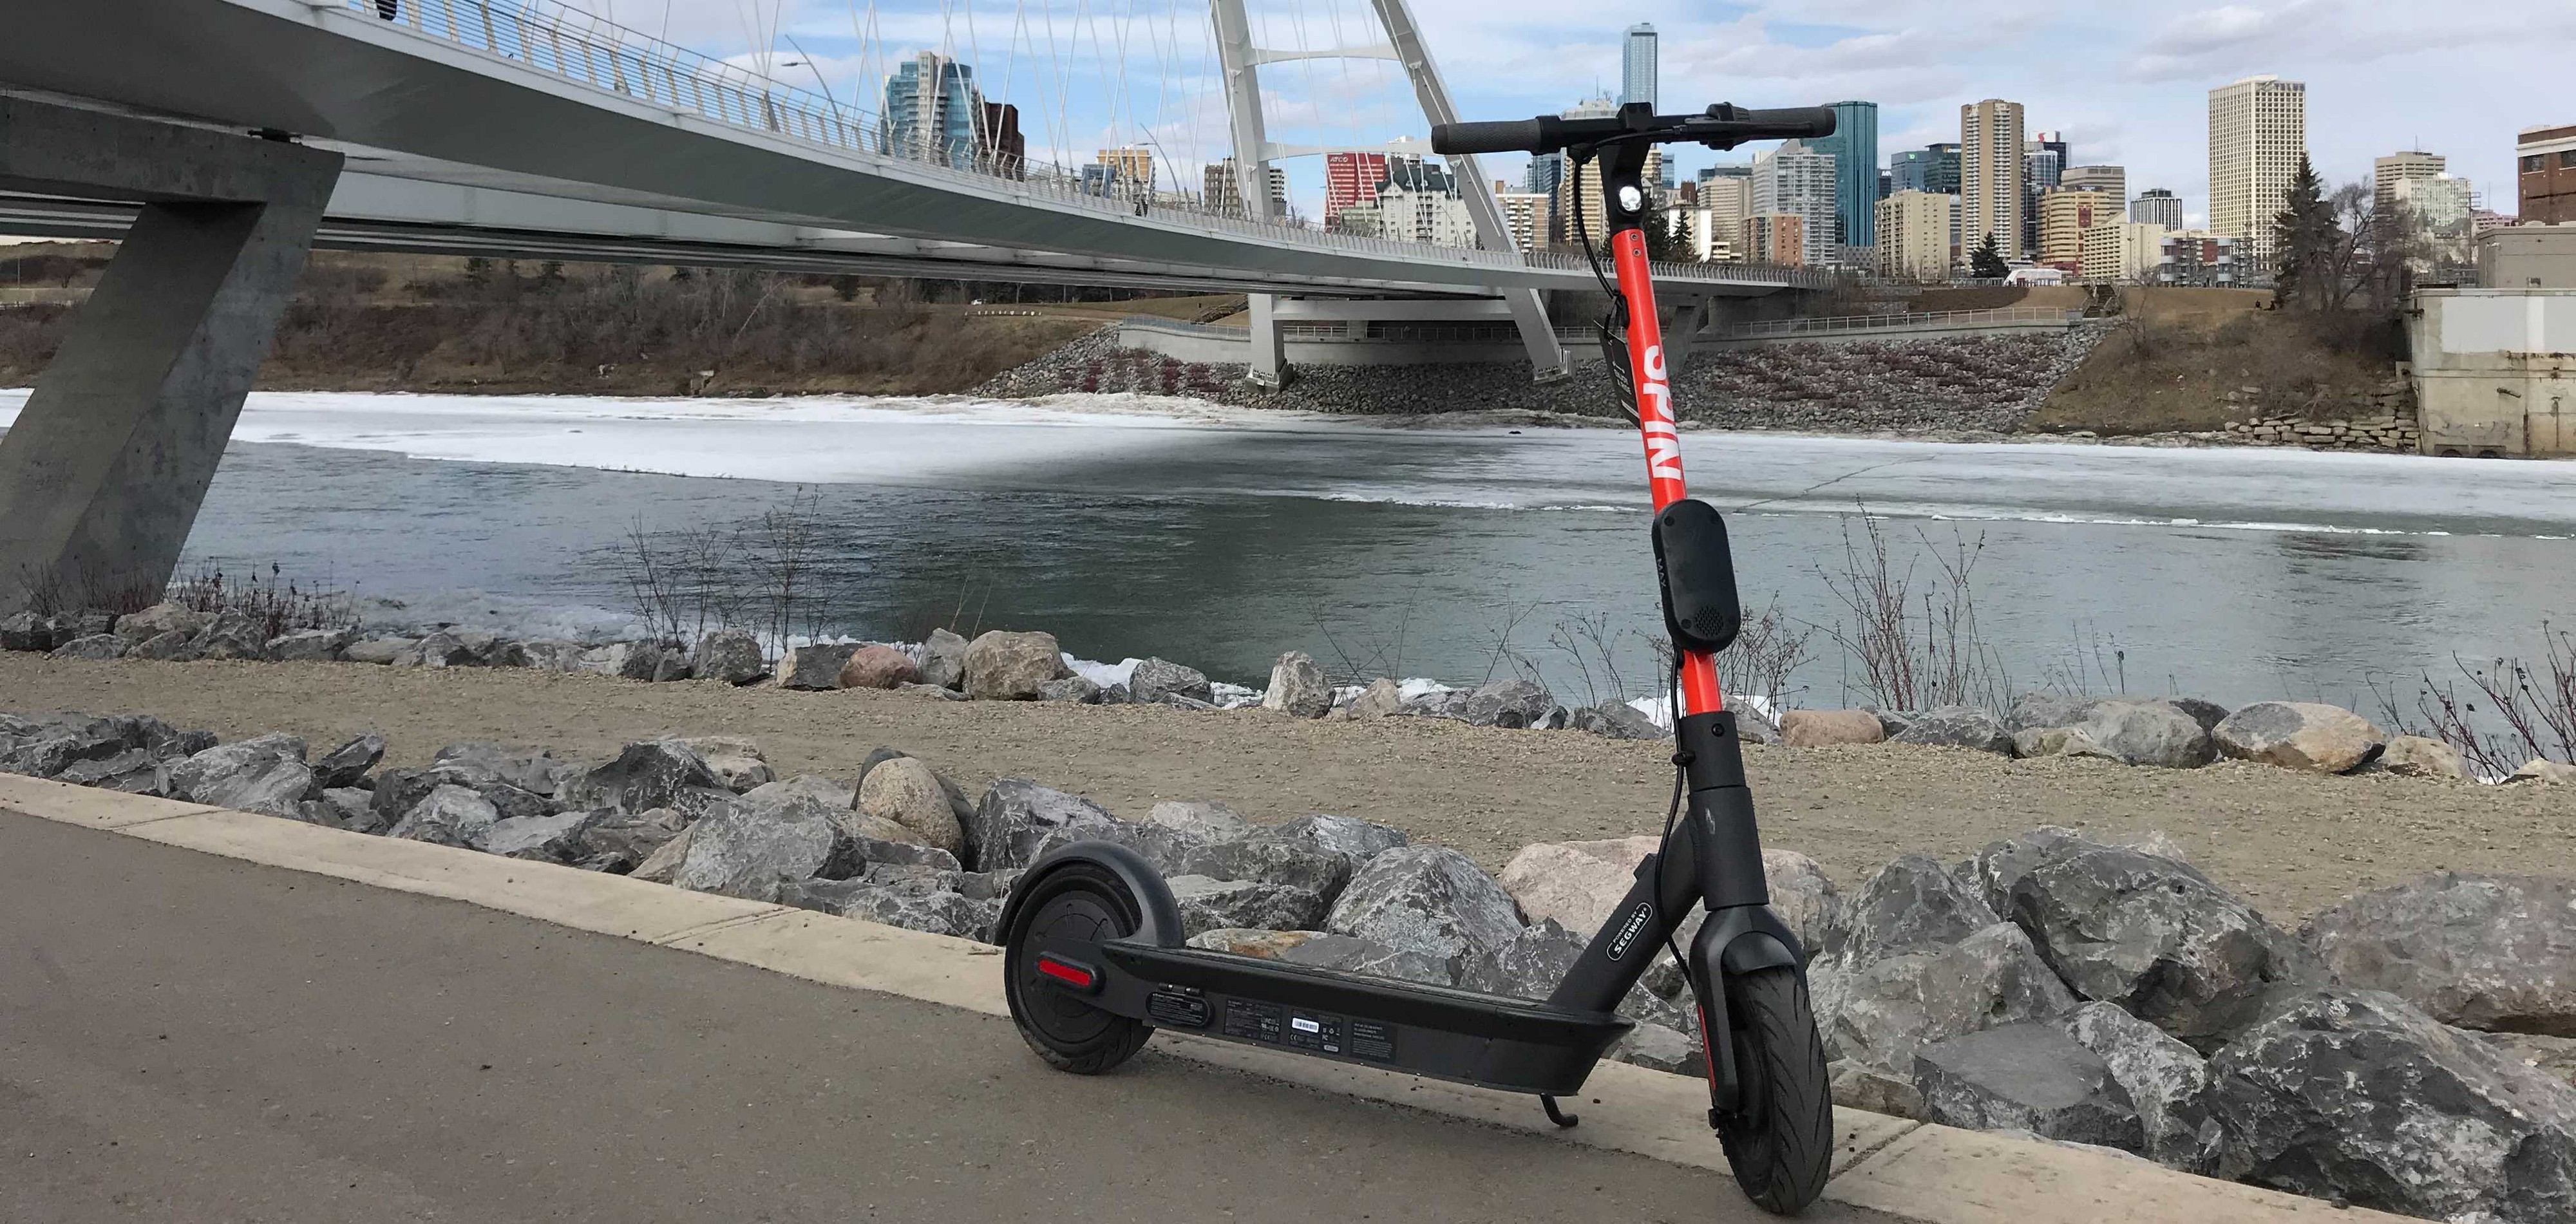 Spin scooter in Canada